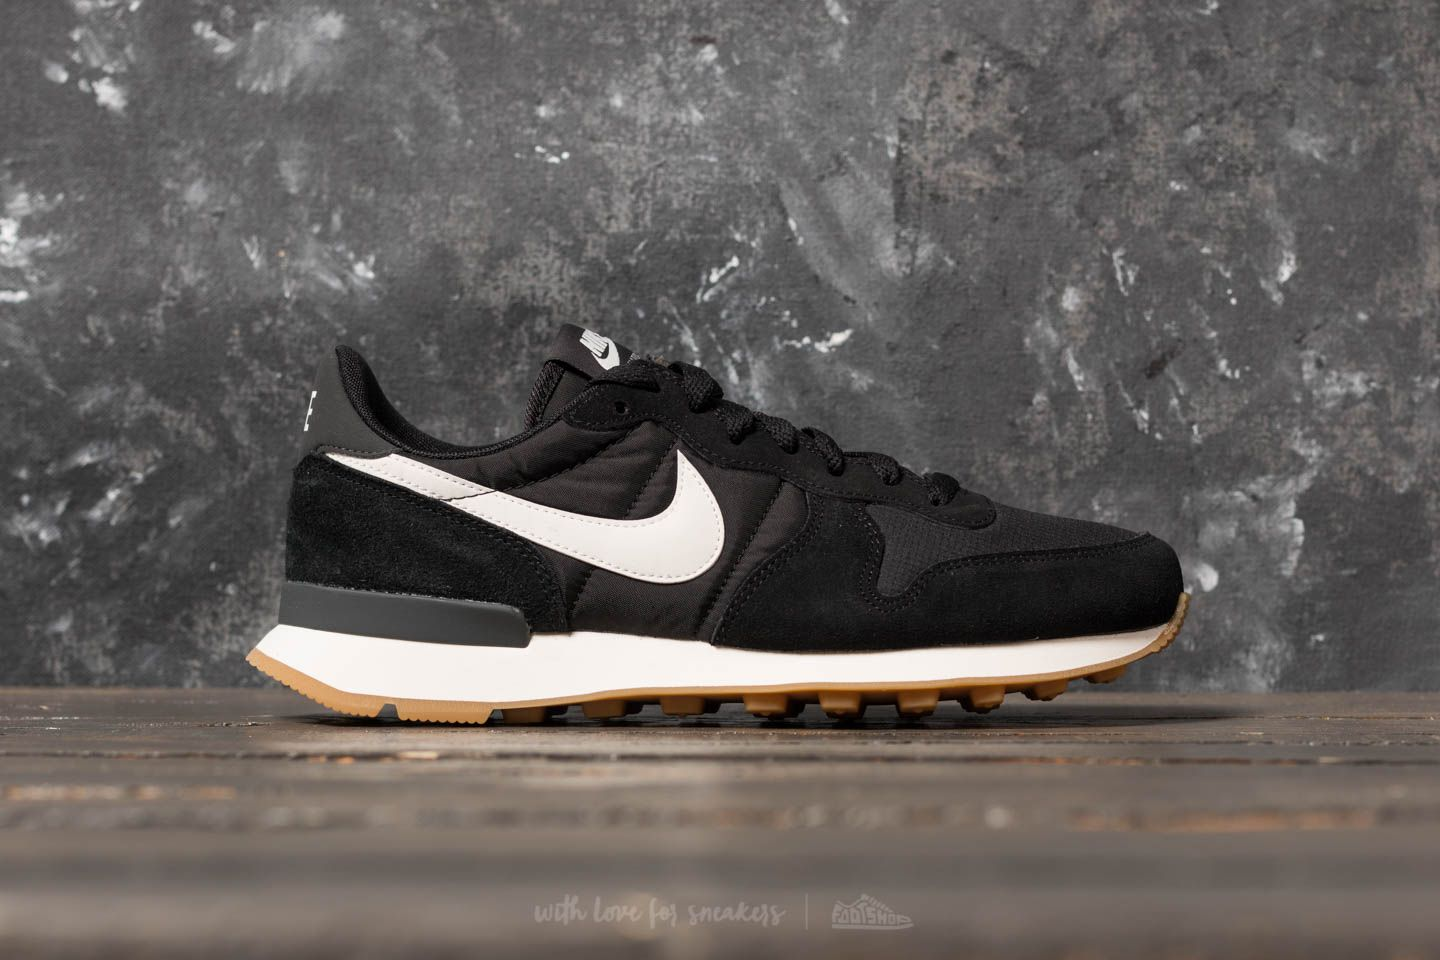 separation shoes 24cec 44d0b Nike Wmns Internationalist Black  Summit White-Anthracite-Sail at a great  price 63